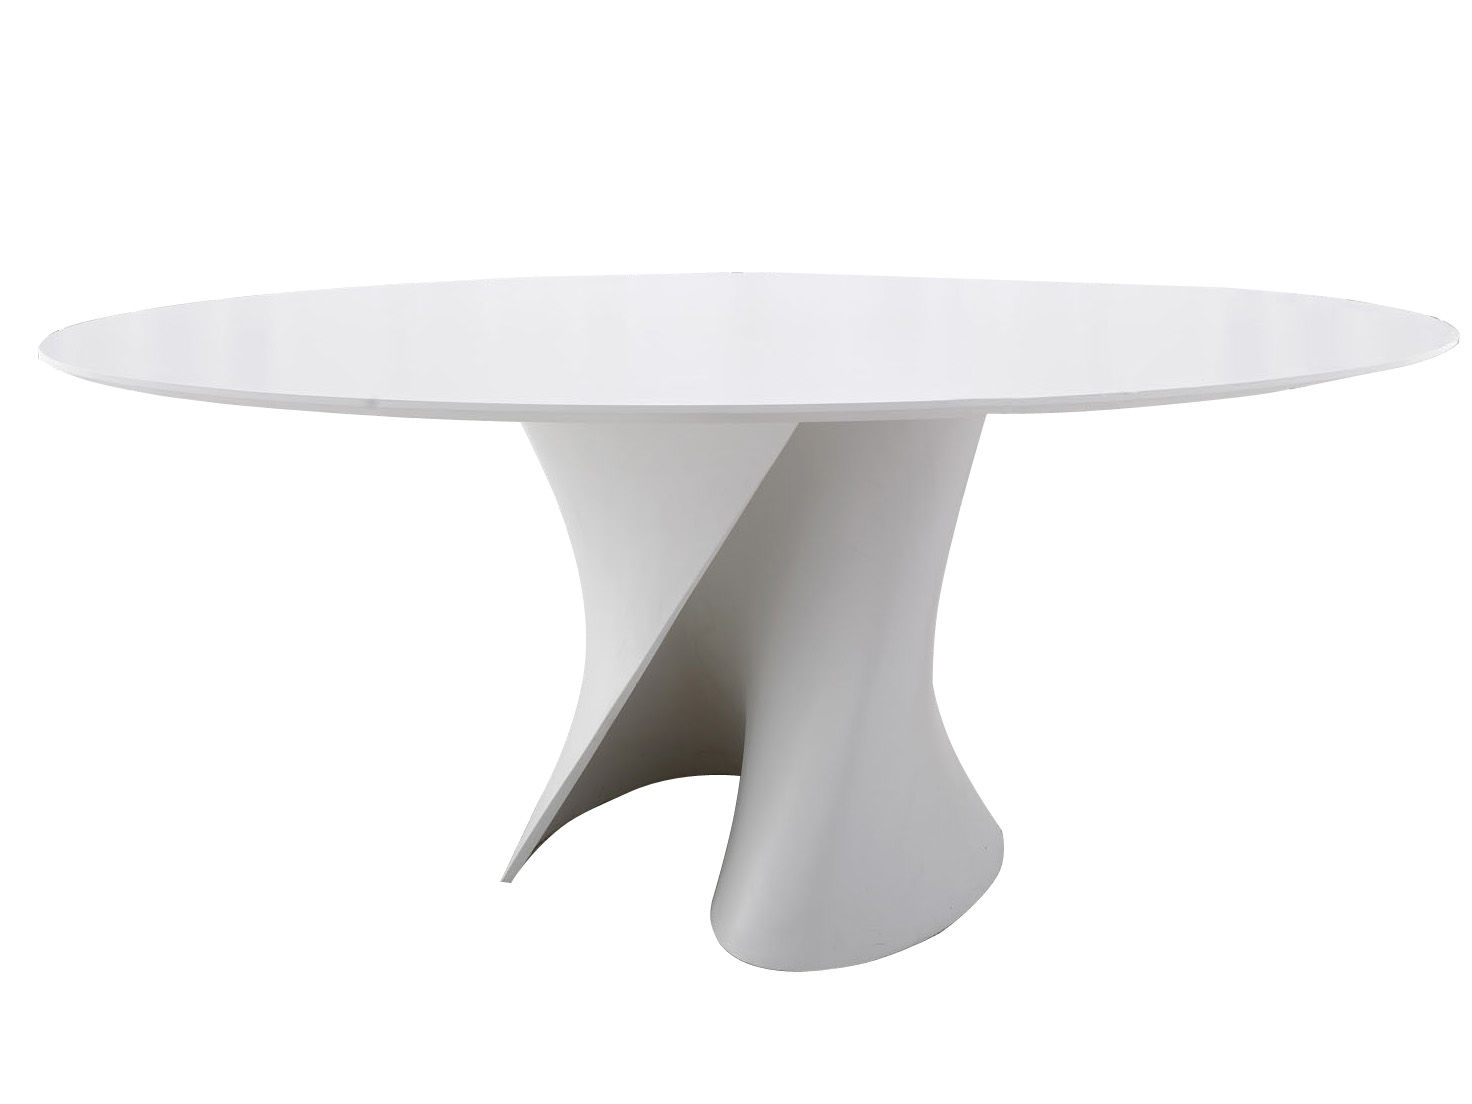 s ovale table oval 150 x 210 cm white resin top white leg by mdf italia. Black Bedroom Furniture Sets. Home Design Ideas